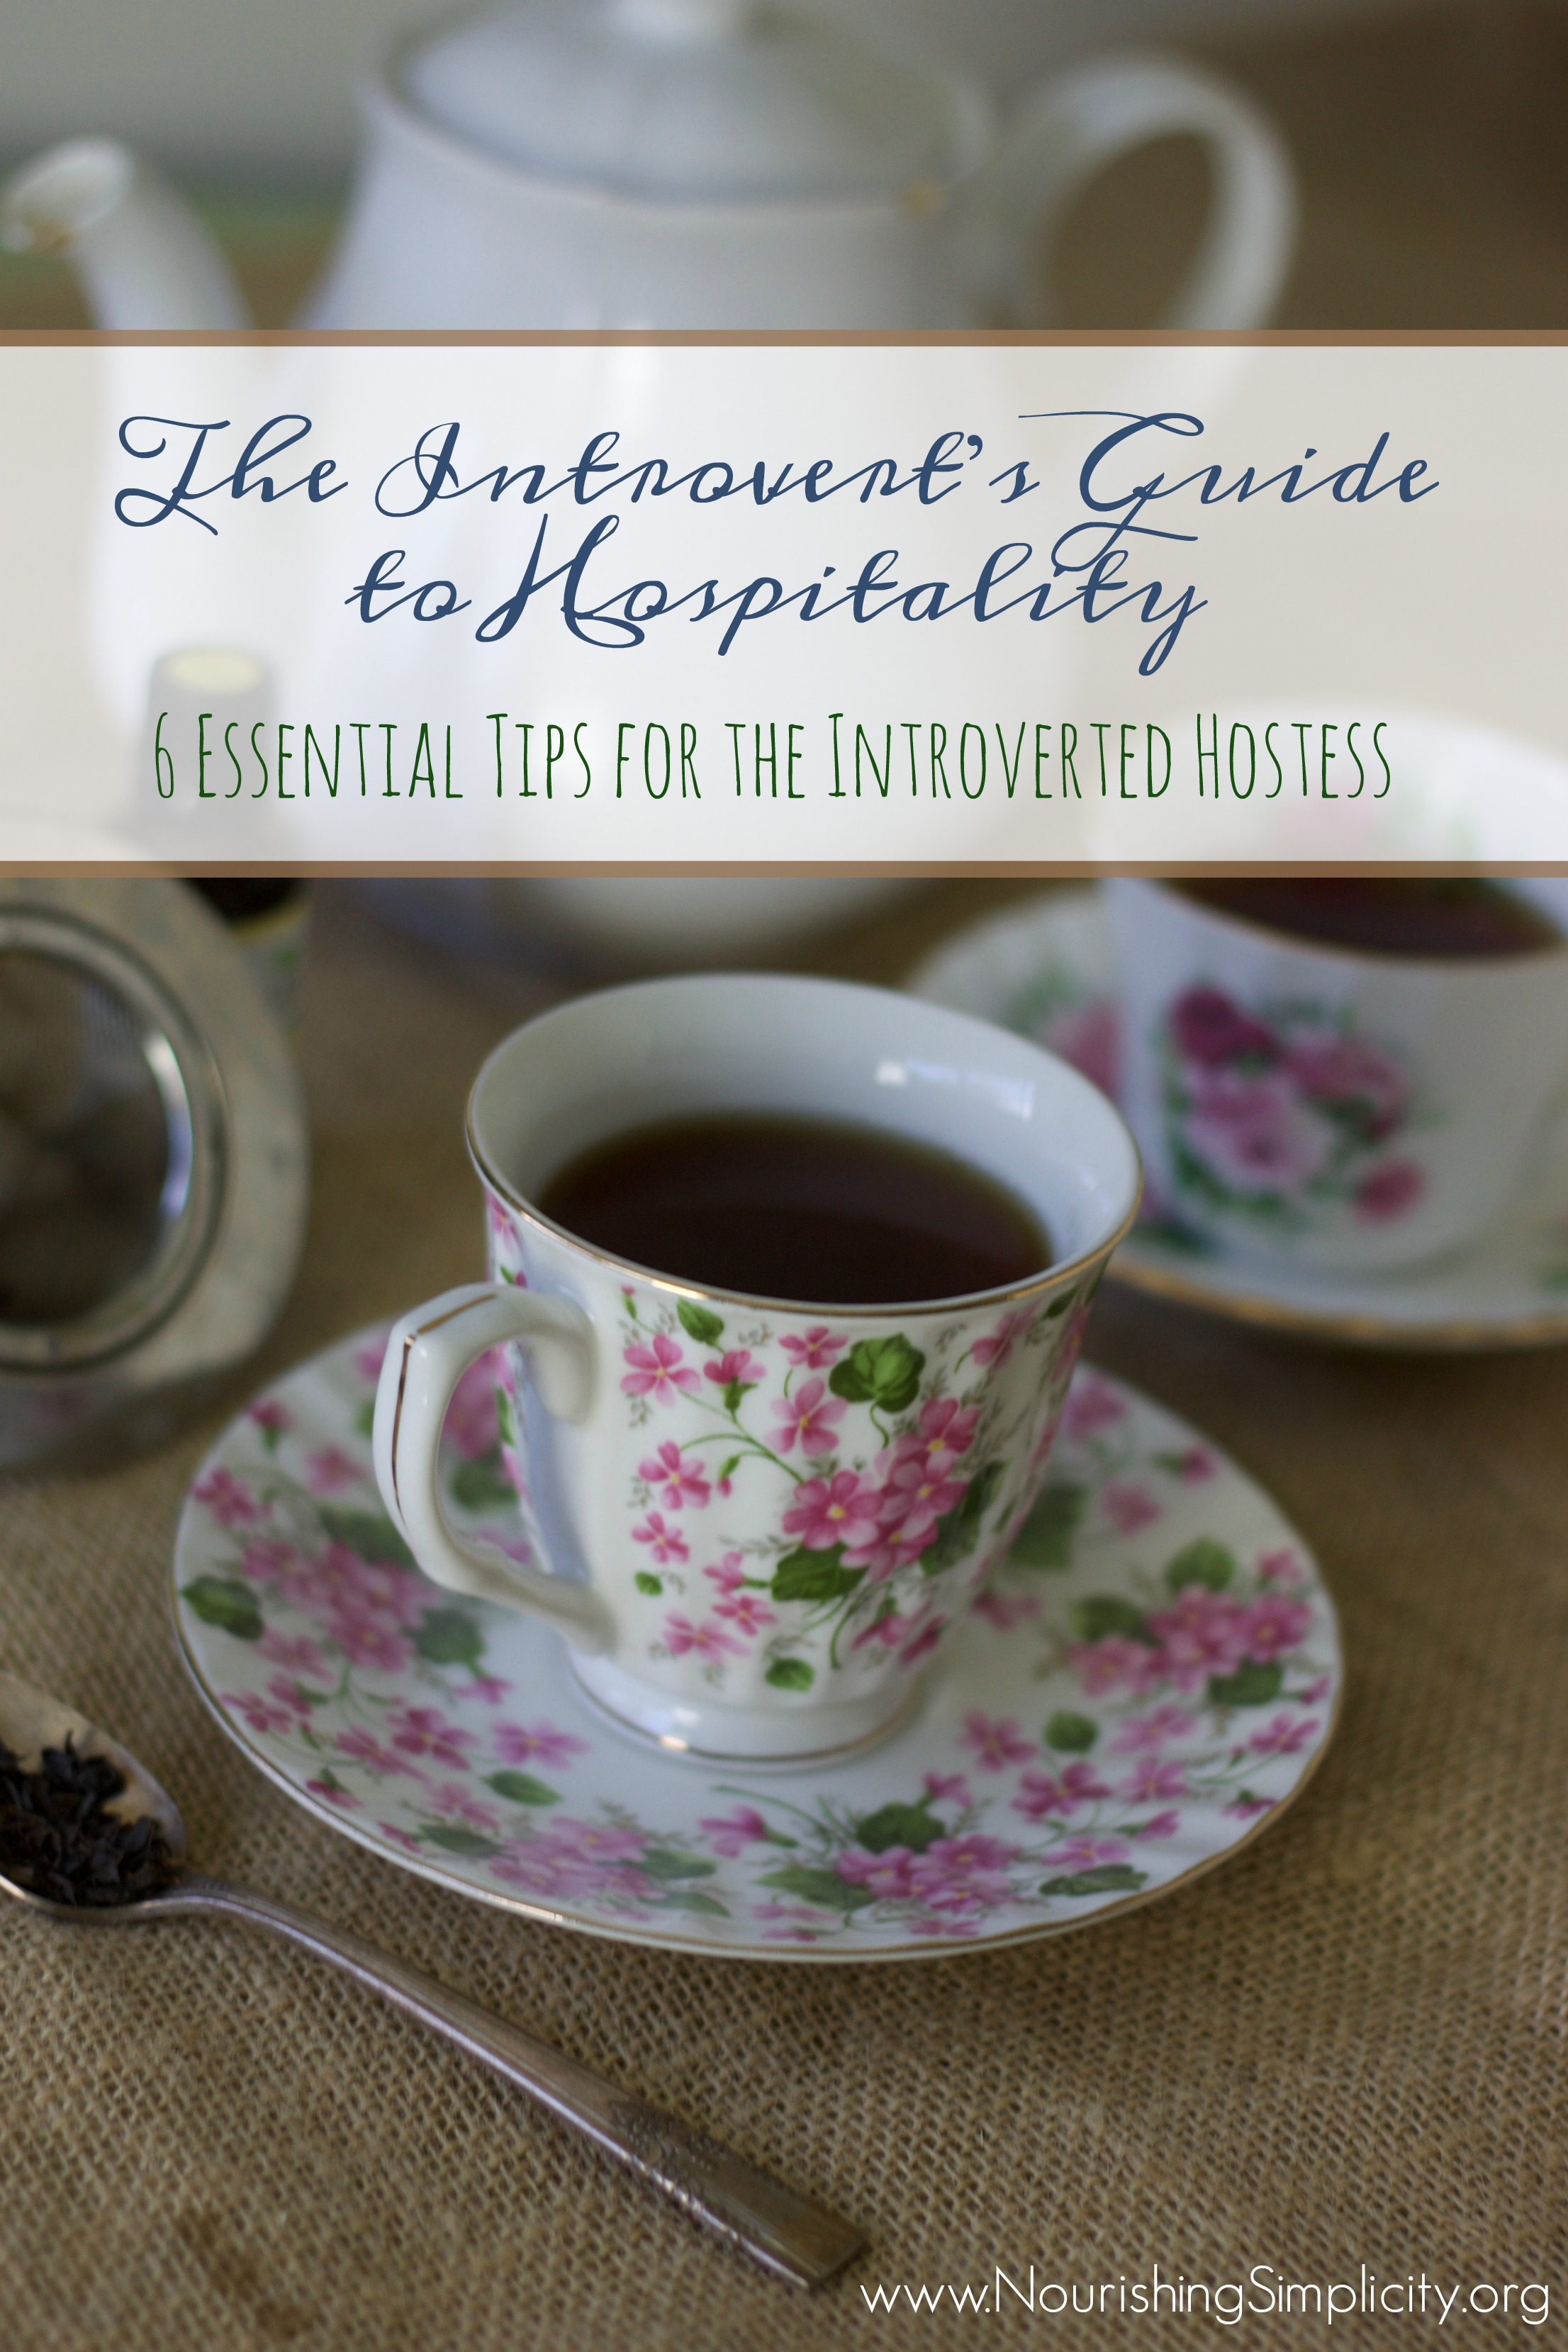 6 Essential Tips for the Introverted Hostess-www.nourishingsimplicity.org